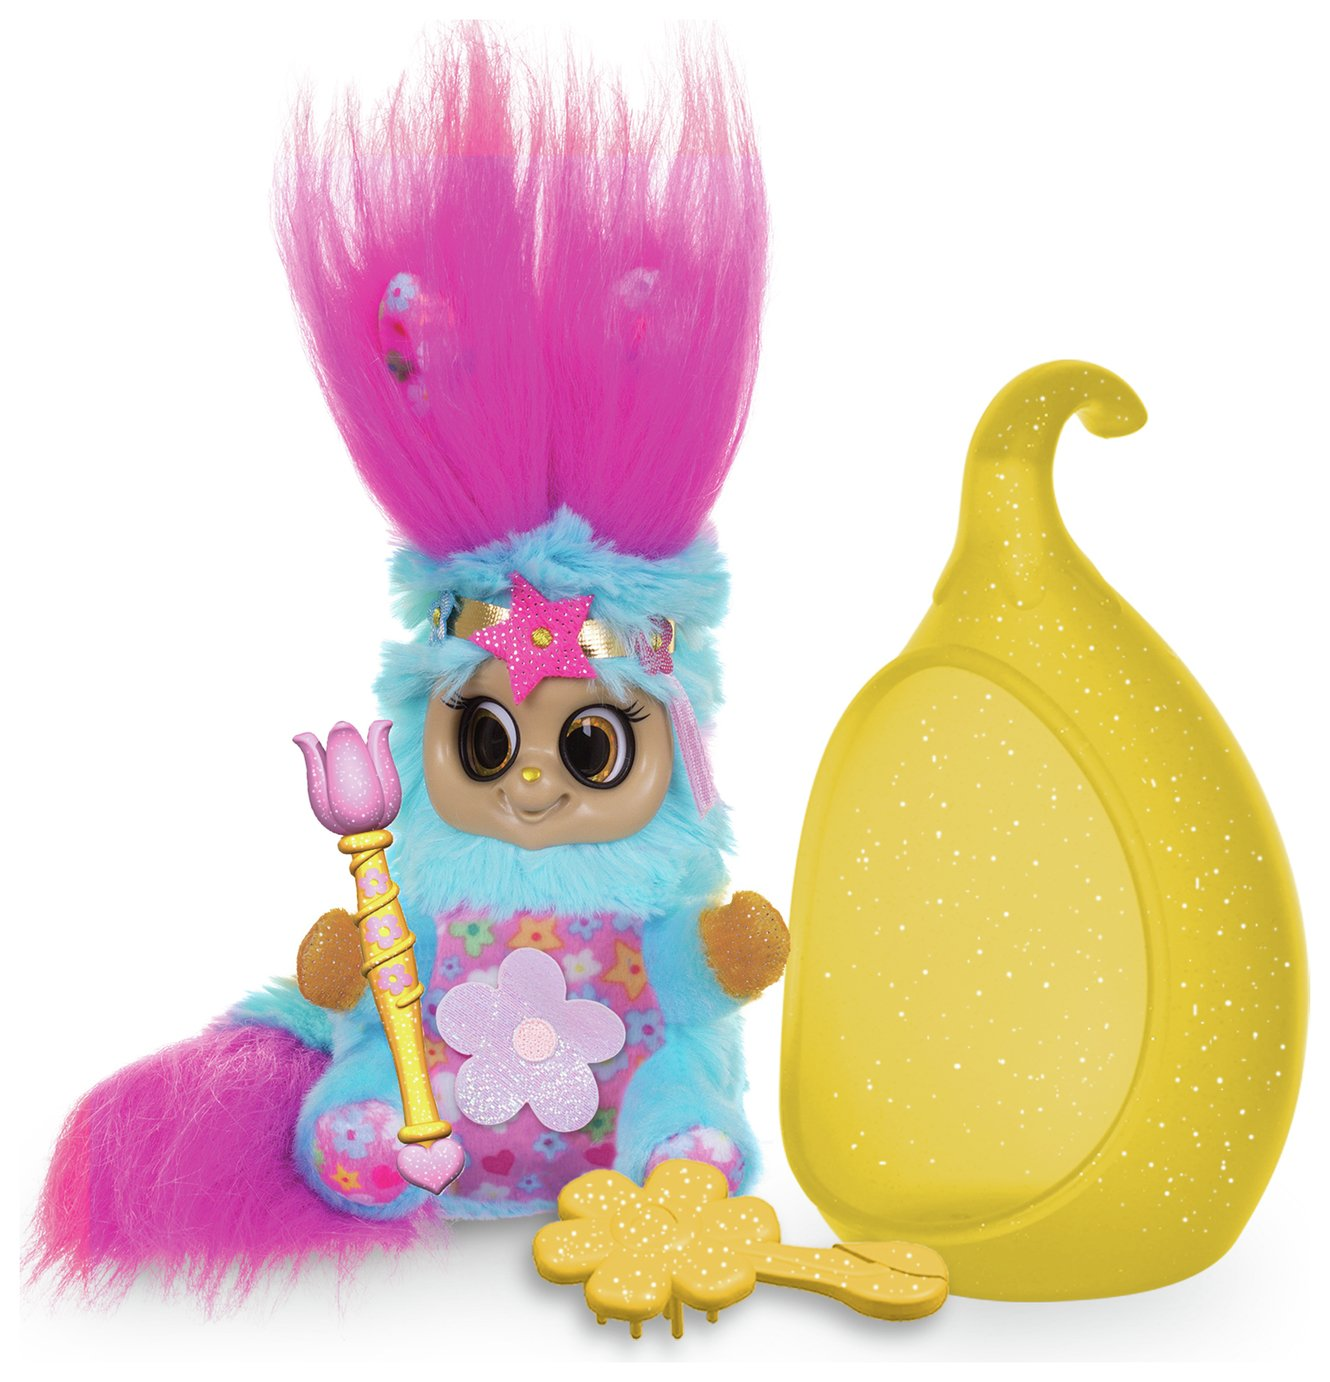 Image of Bush Baby World Princess Blossom Toy